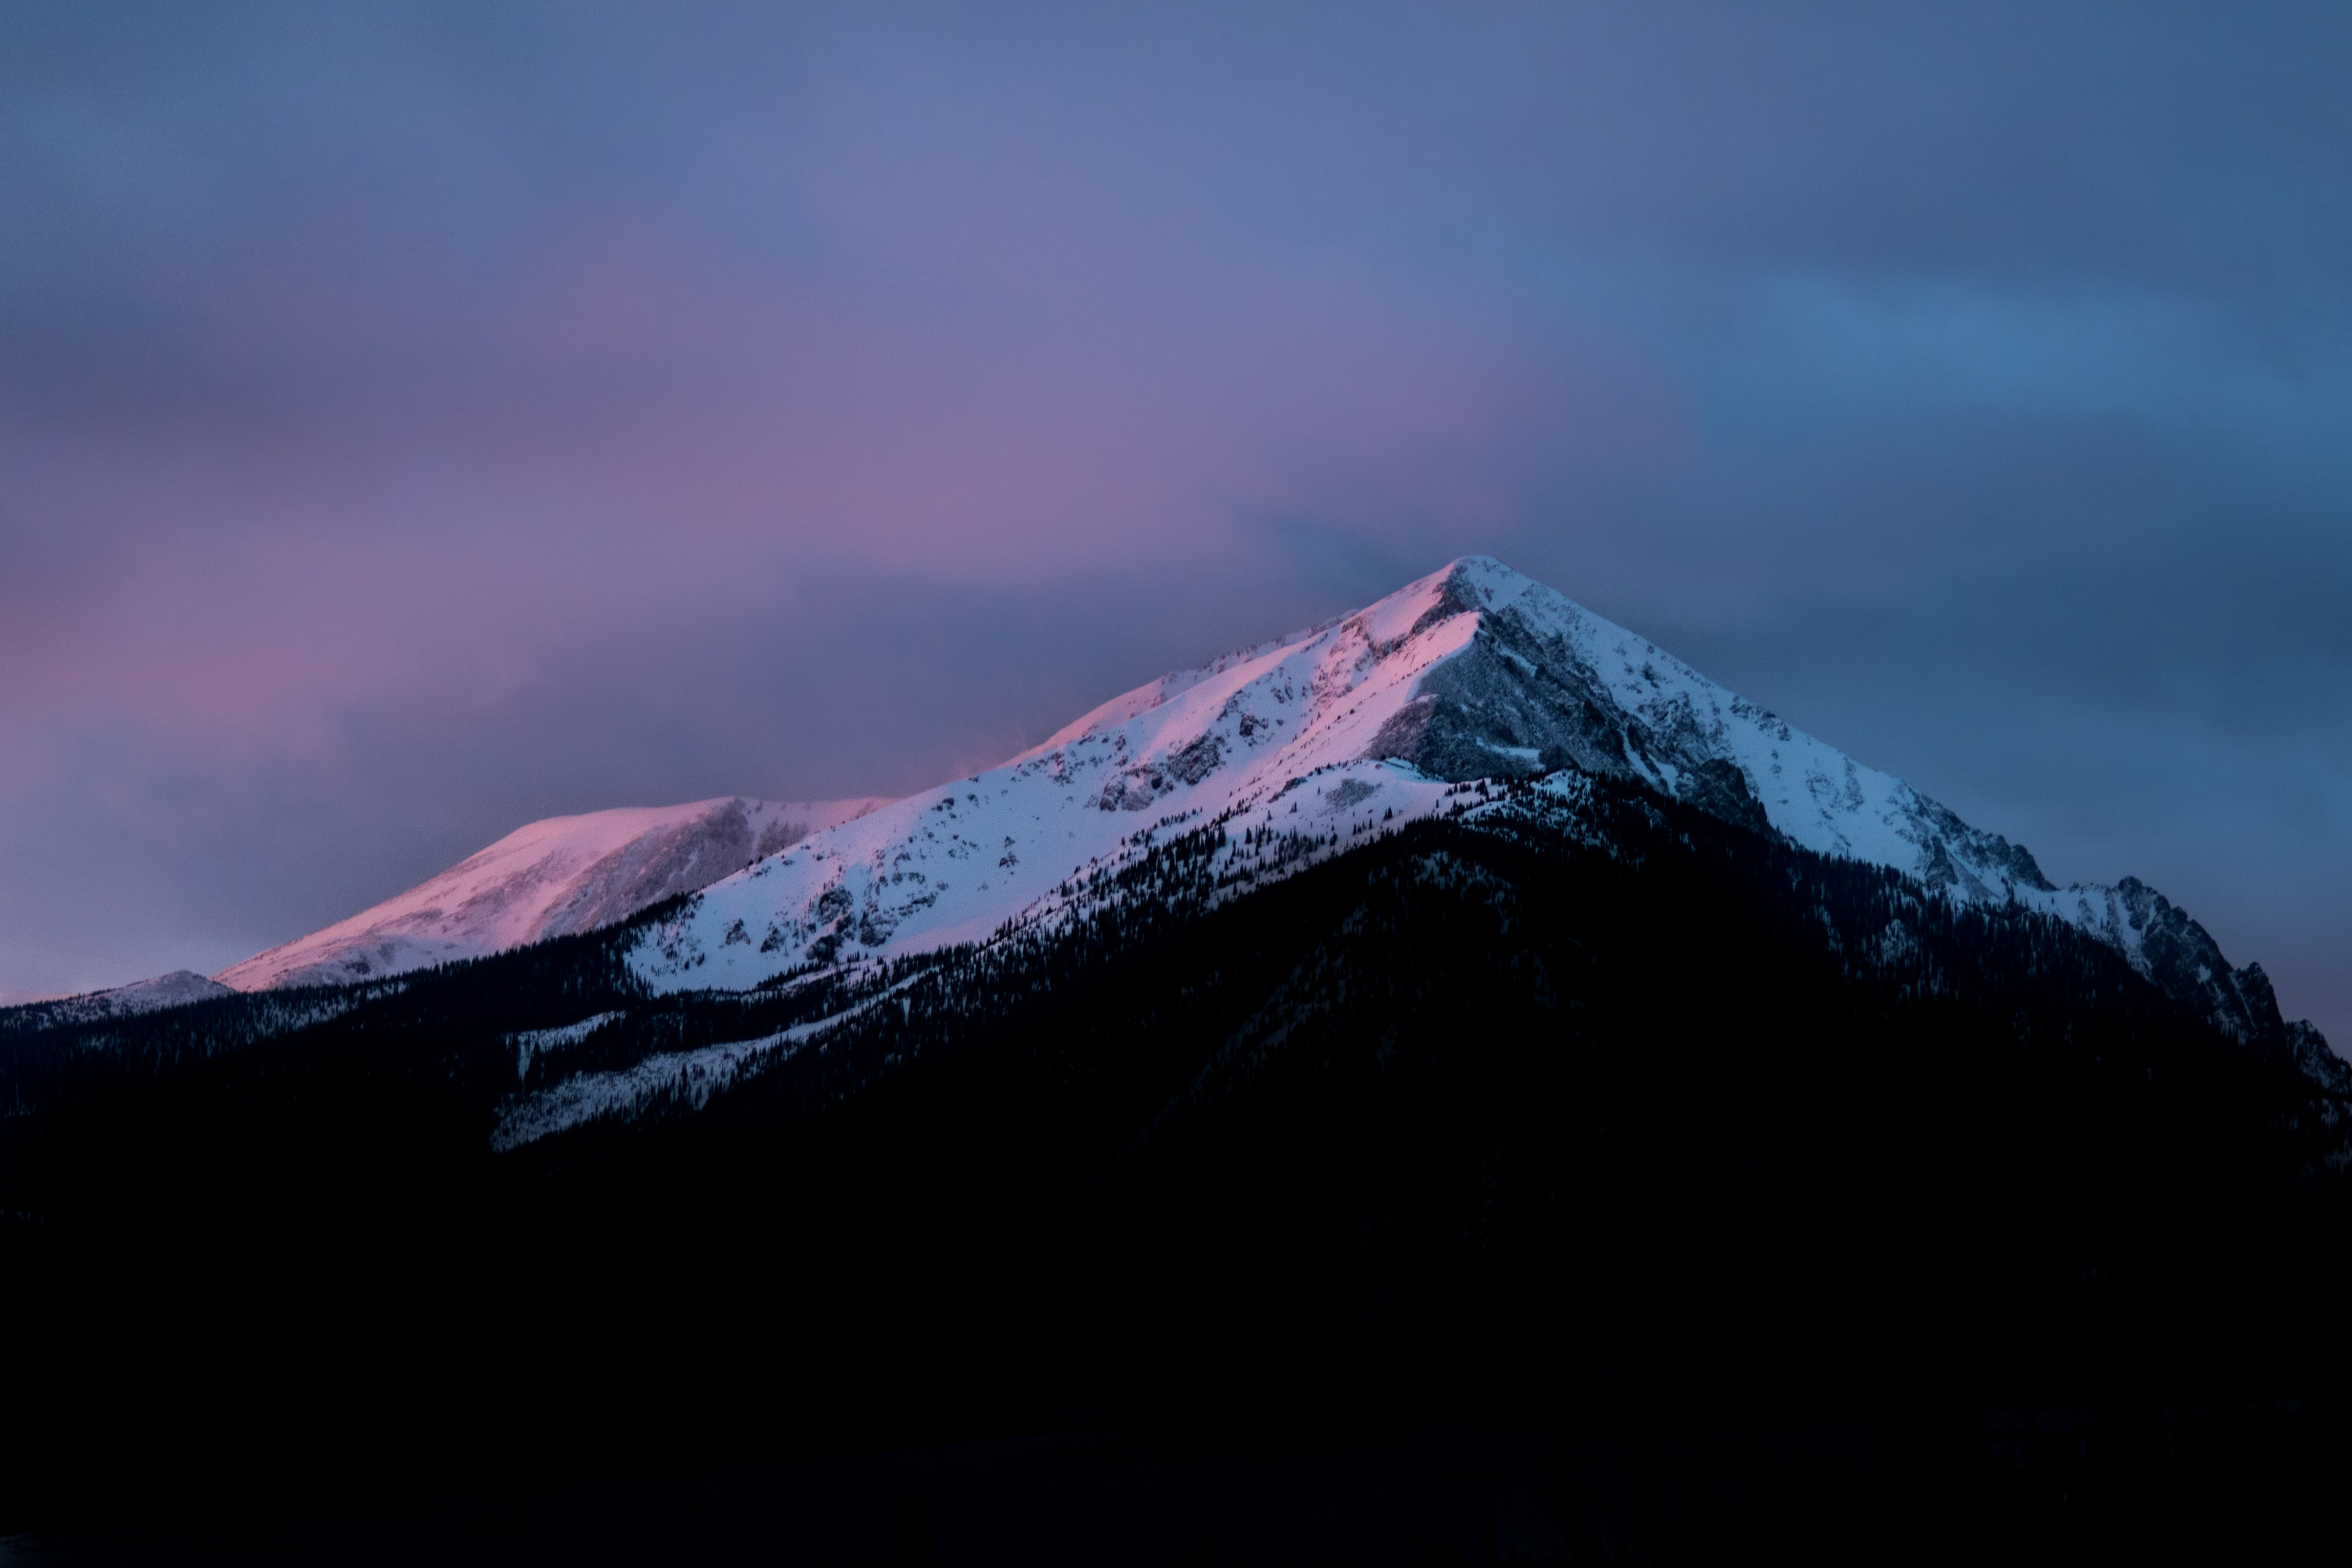 A sharp snow-capped mountain peak in Silverthorne during dusk